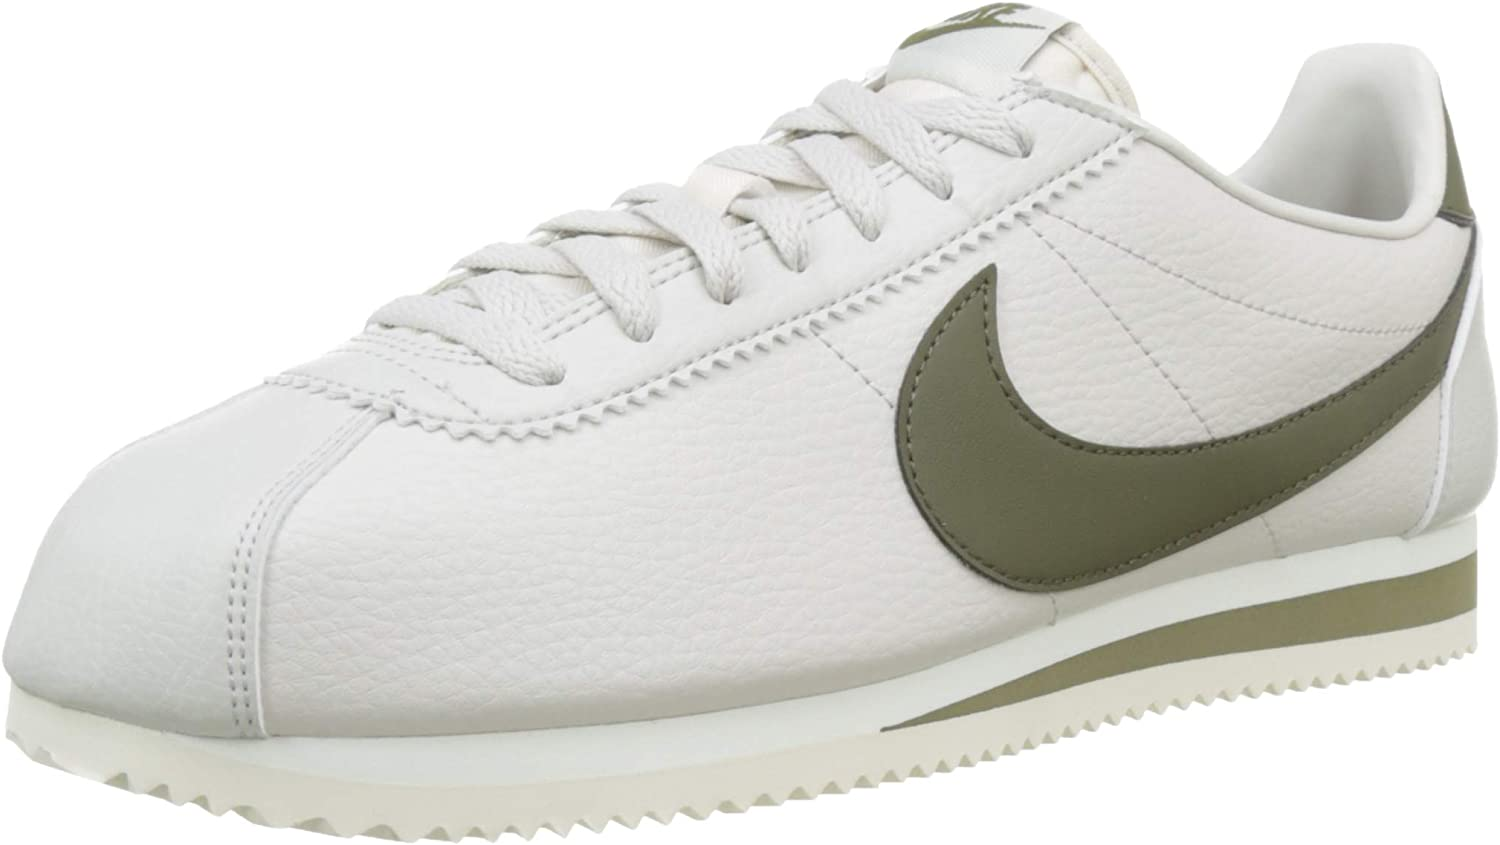 Nike Men's Classic Cortez Leather Fitness shoes